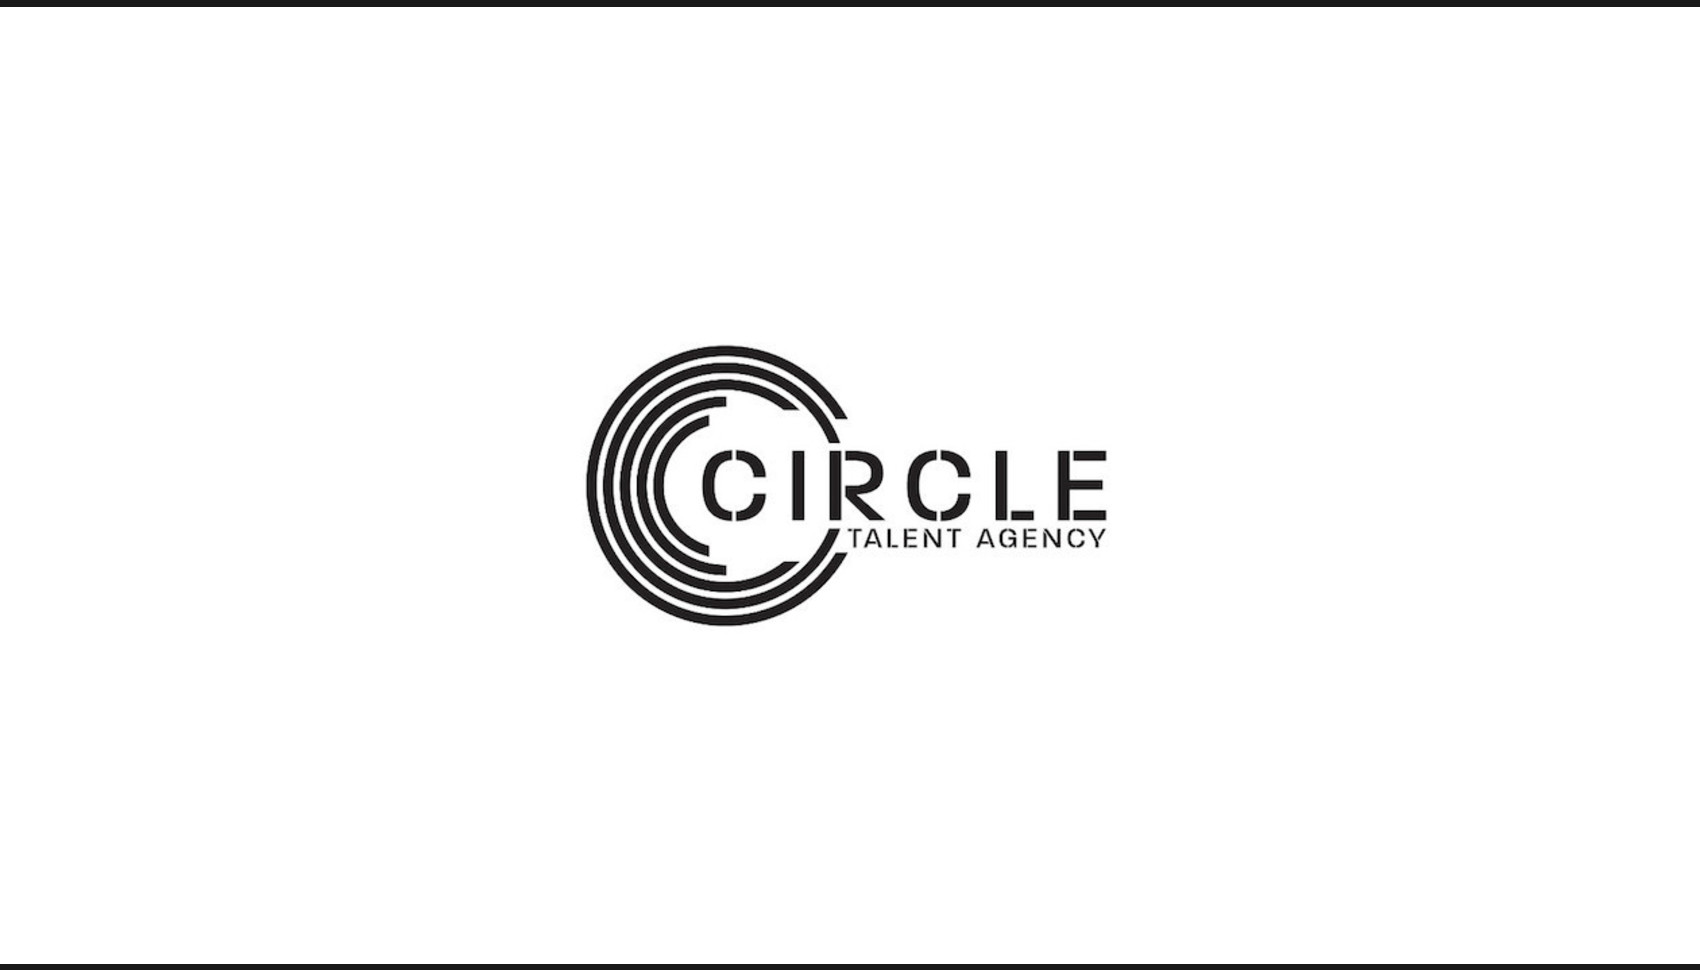 Circle Talent Agency logo